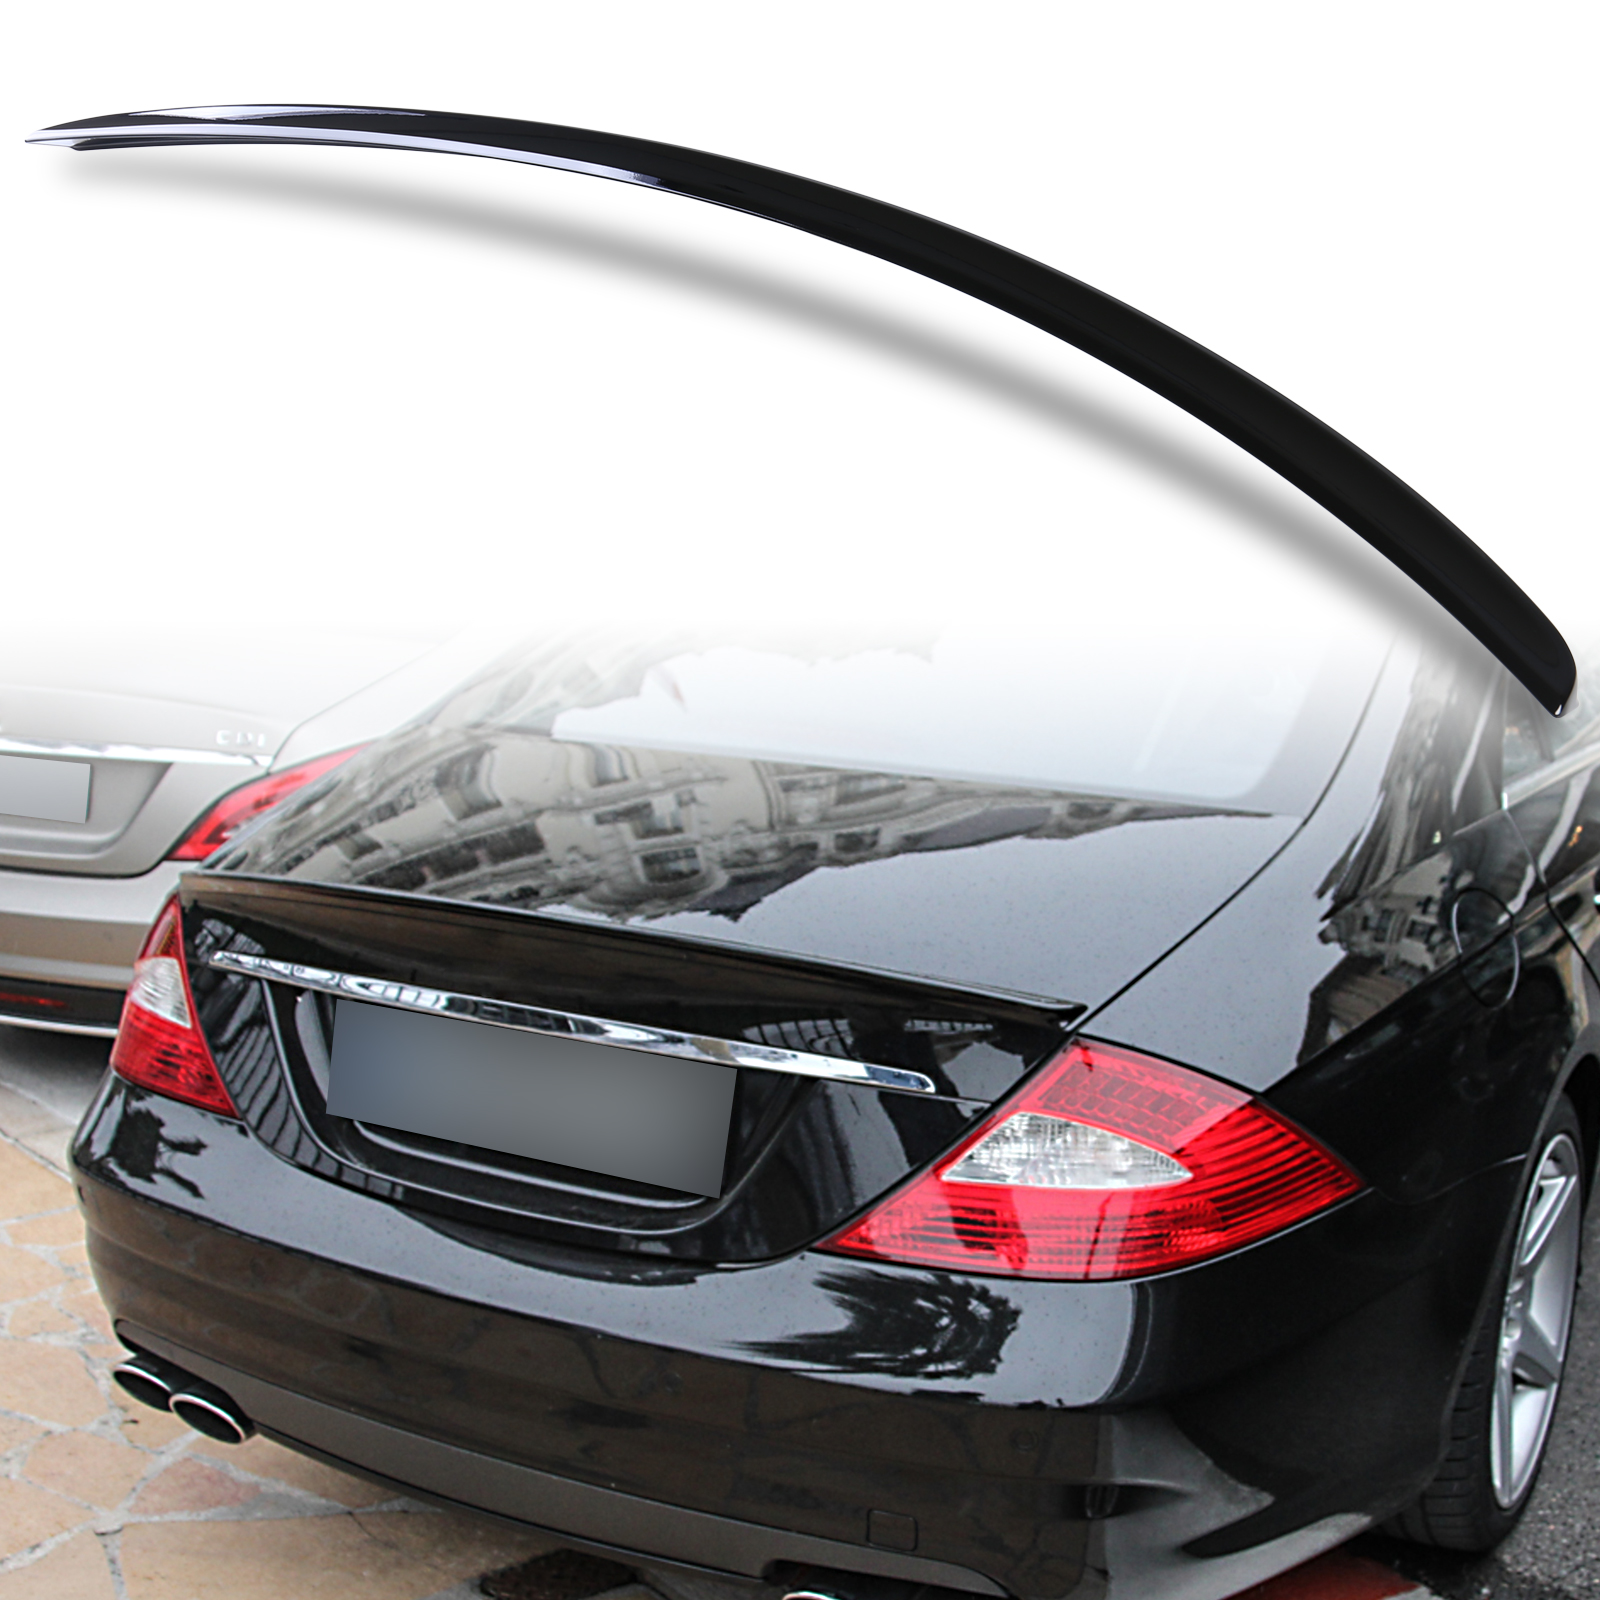 Painted ABS trunk spoiler for Mercedes Benz W219 AMG STYLE Obsidian Black 197